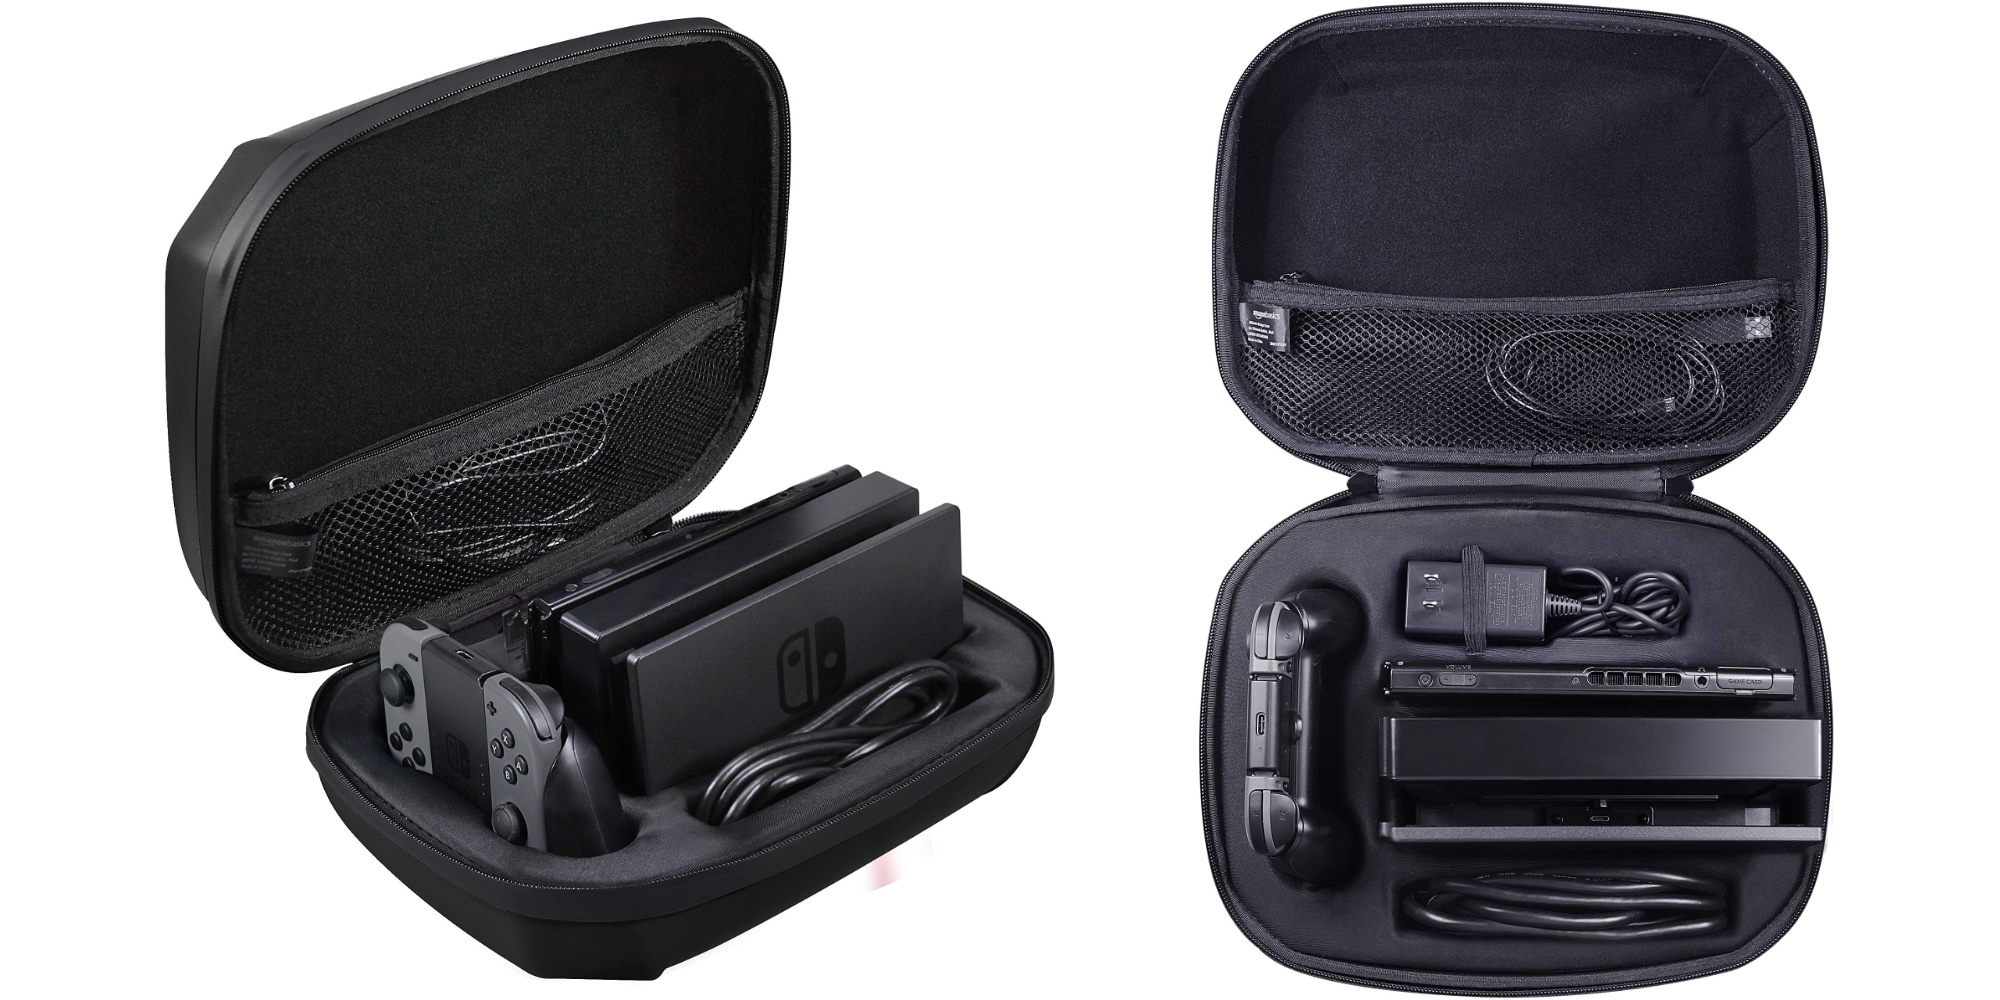 The AmazonBasics $20 Ultimate Storage Case is your Switch's ideal travel companion (Save 20%)